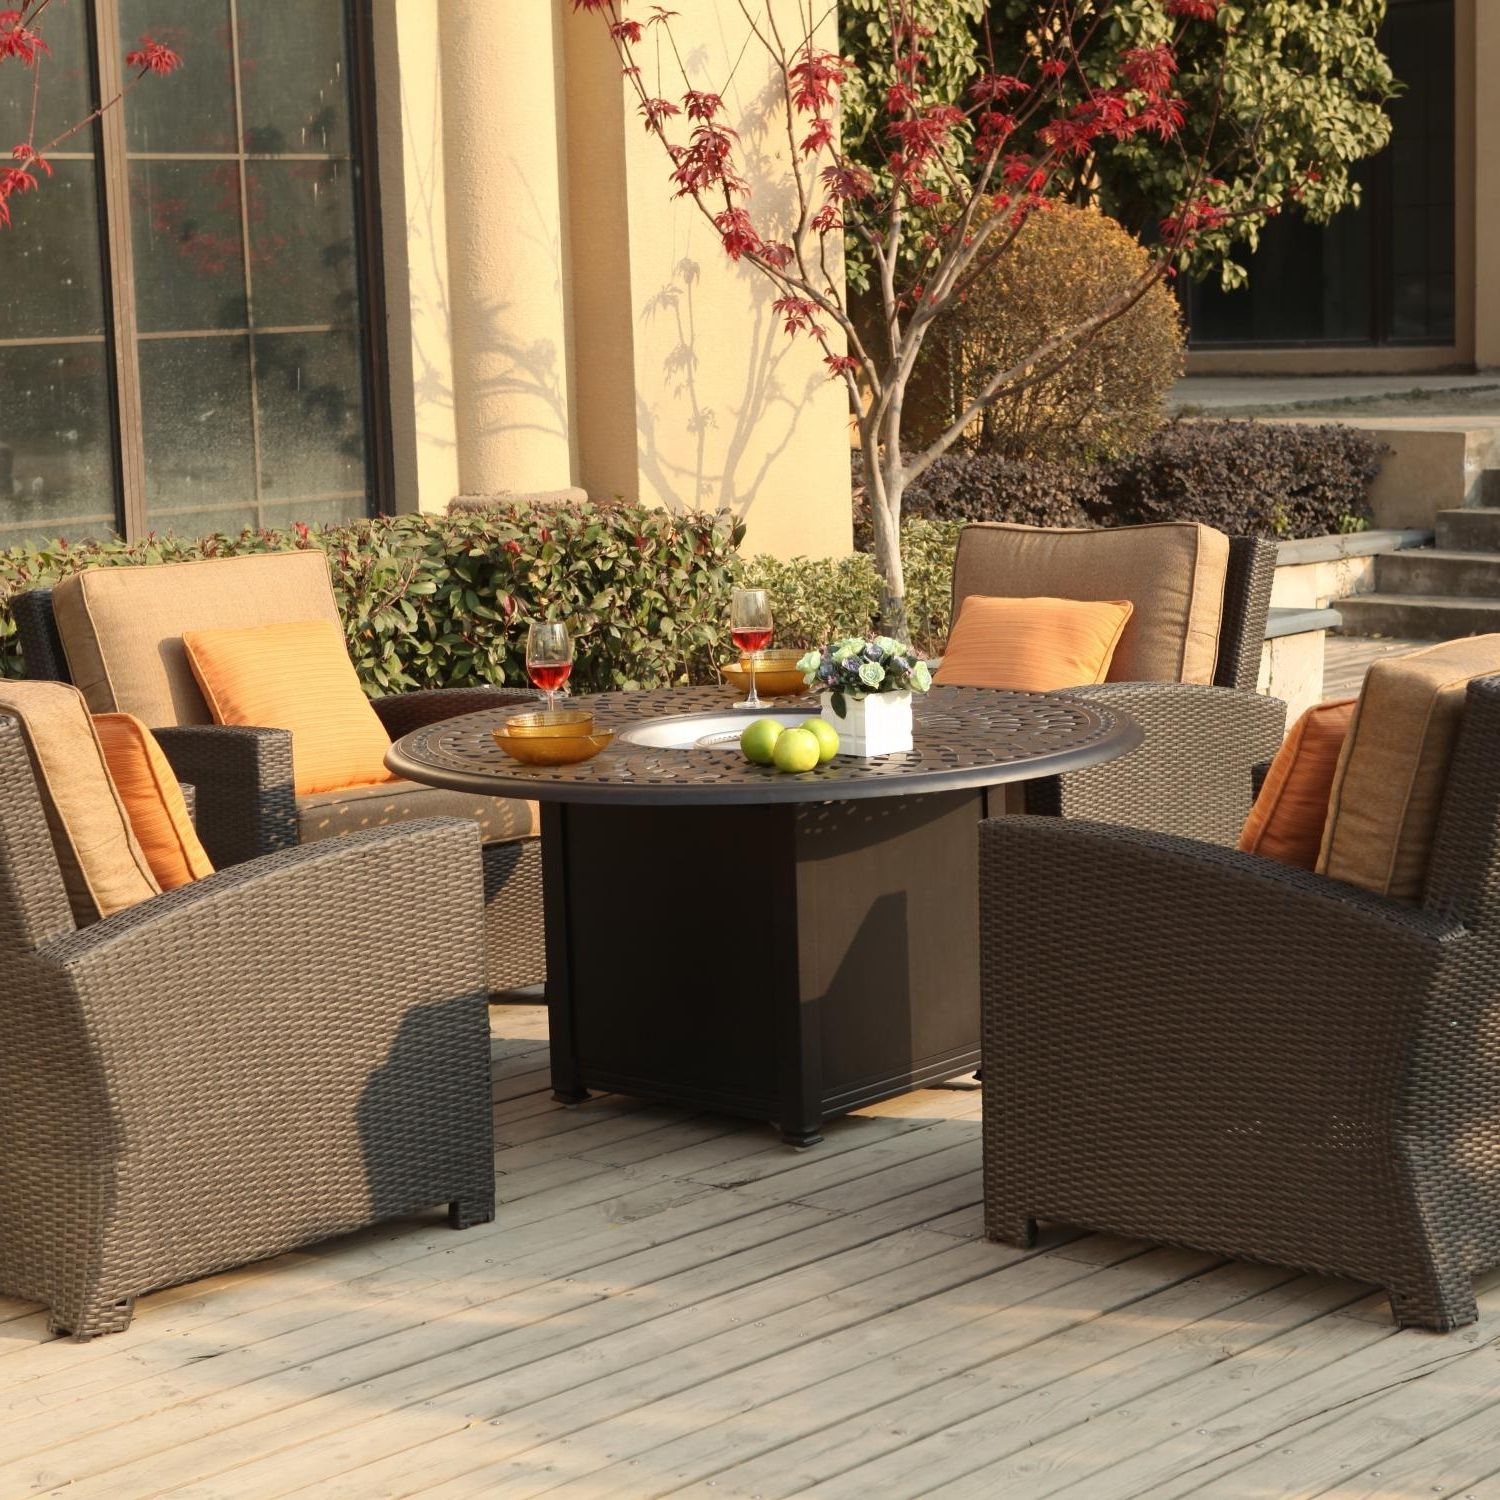 Most Recently Released Darlee Vienna 5 Piece Resin Wicker Patio Fire Pit Set Within Patio Conversation Sets With Fire Pit (View 5 of 20)